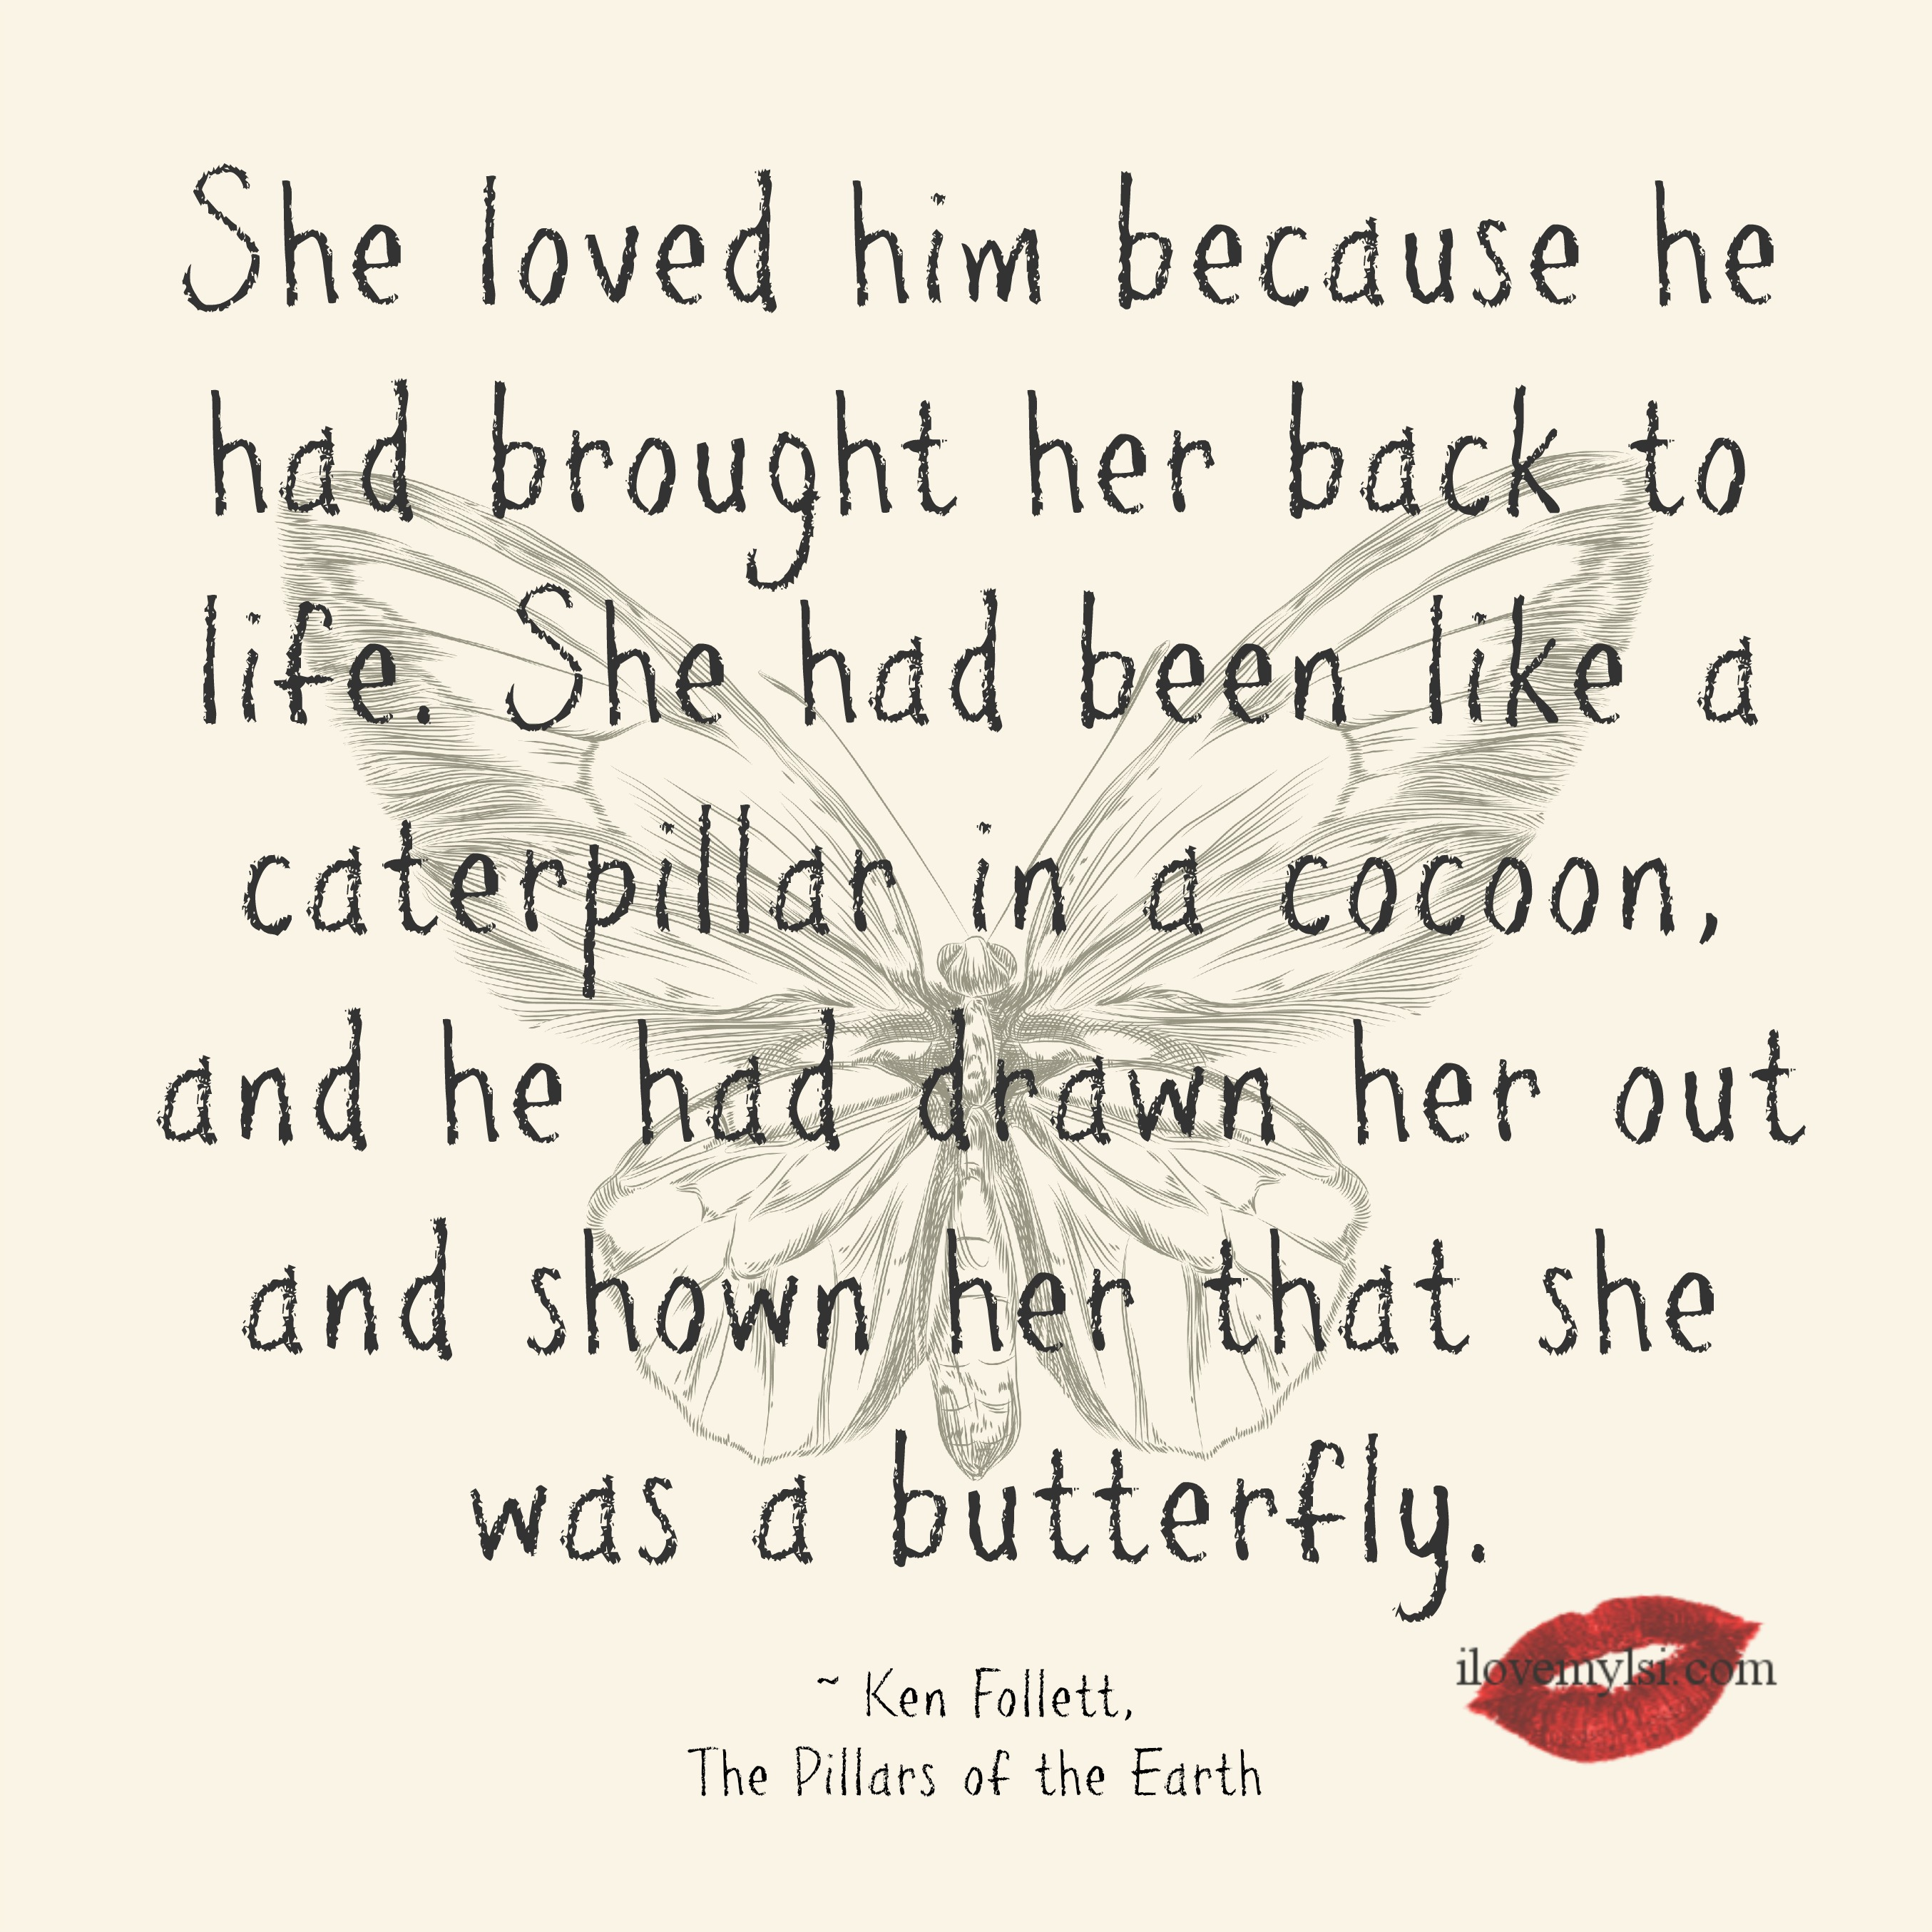 Quotes Of Loving Him: The 25 Most Romantic Love Quotes You Will Ever Read